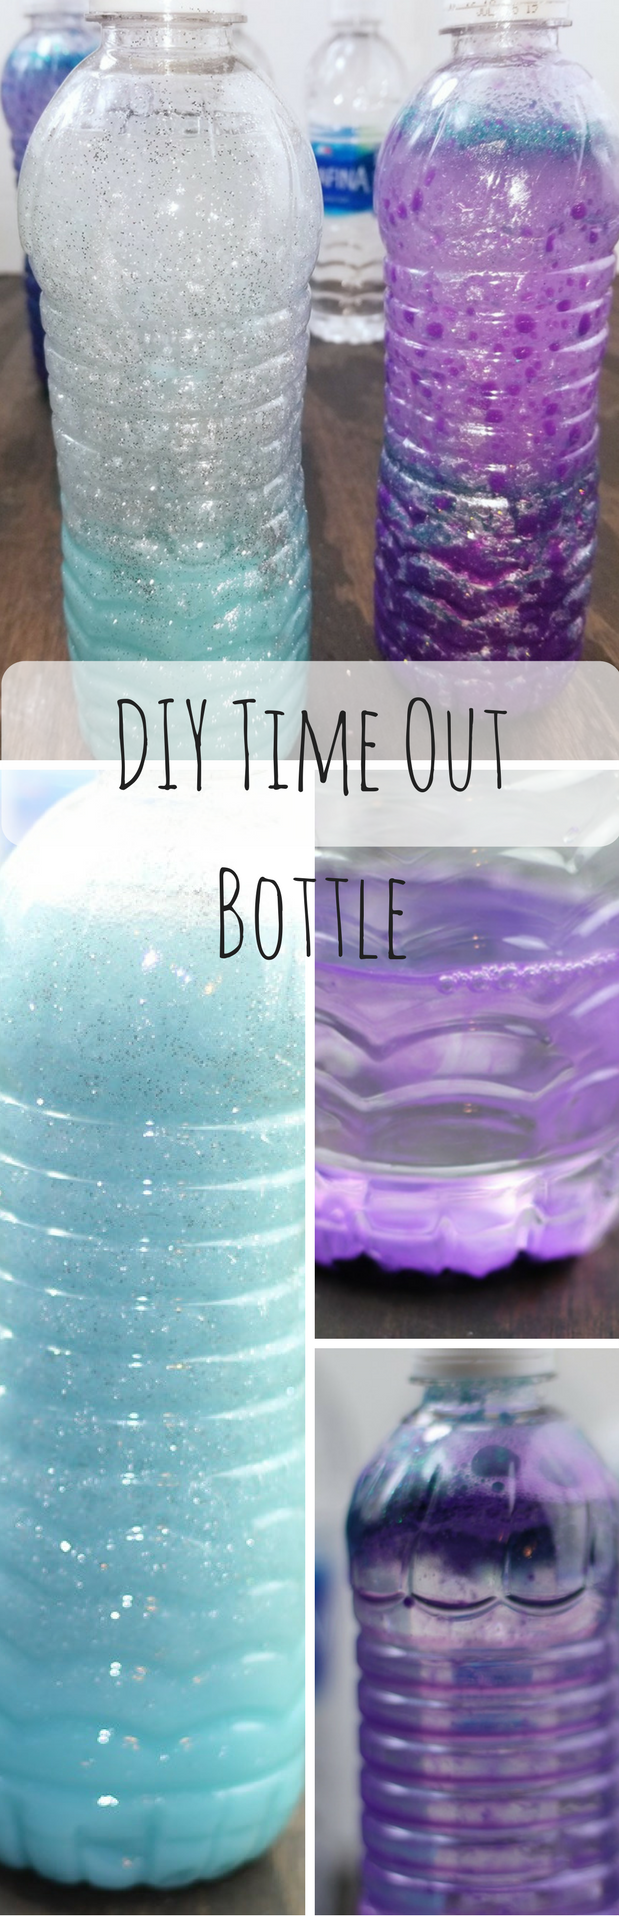 DIY Time Out Bottle